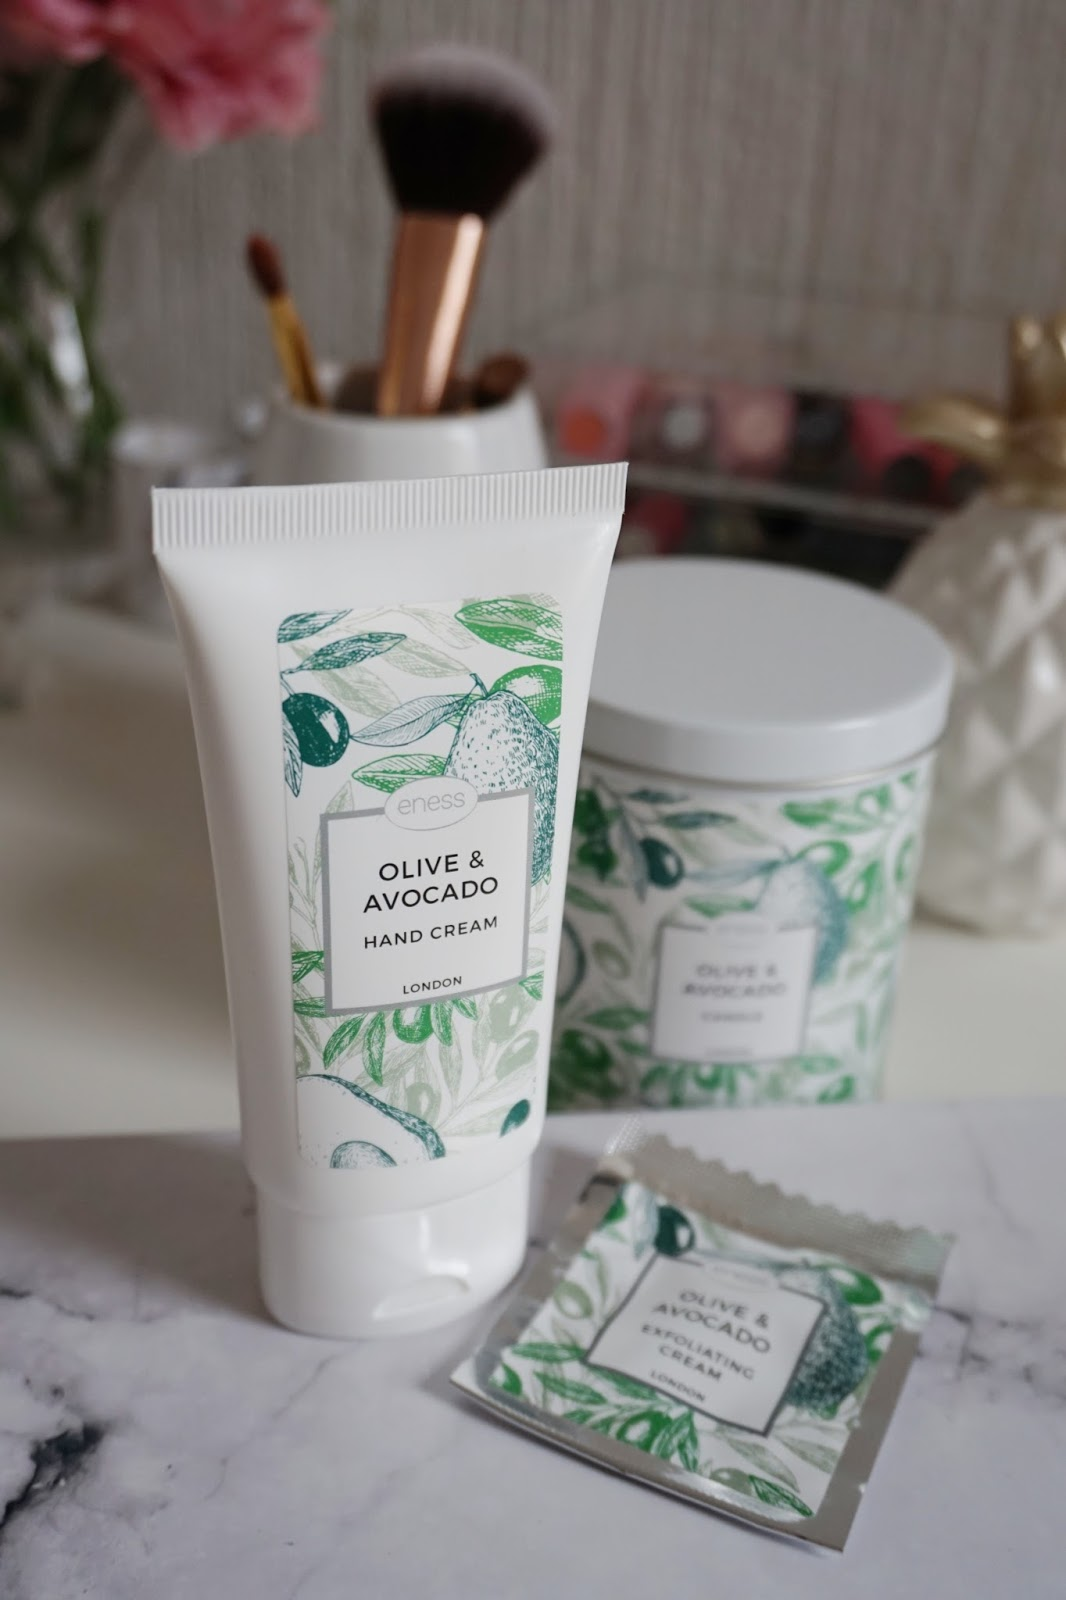 The Olive and Avocado hand cream nourishes during the colder days